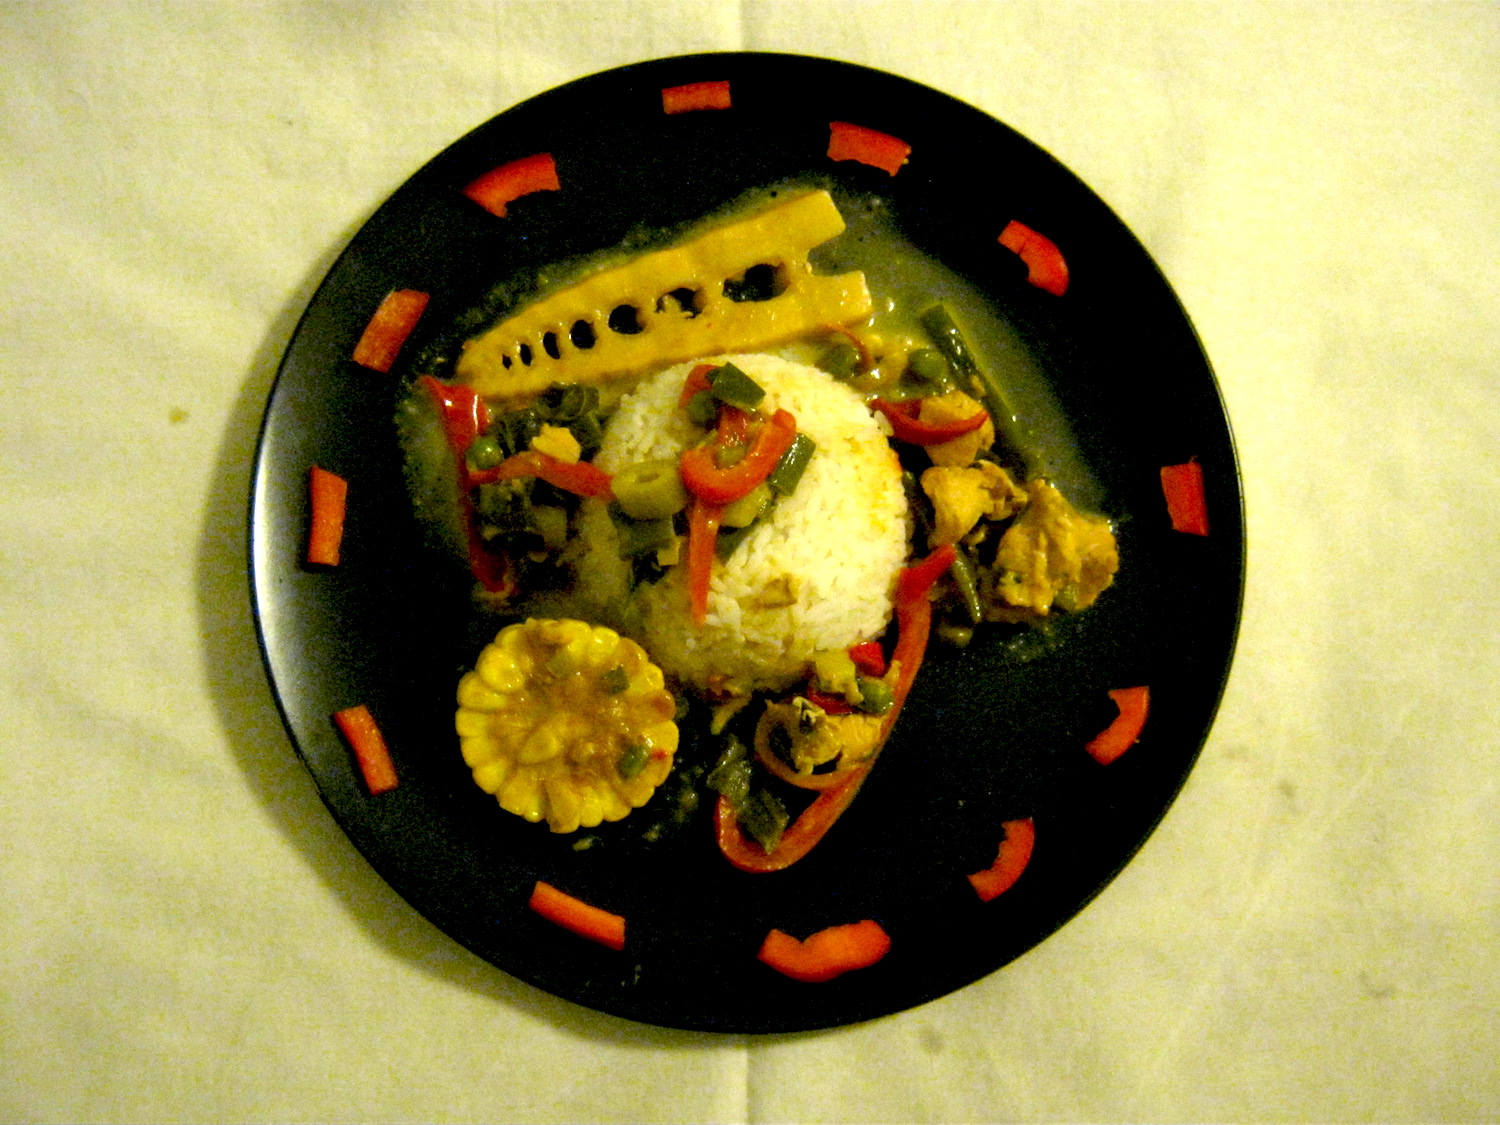 Thai Yellow Curry with peppers and bamboo shoots served on a black plate